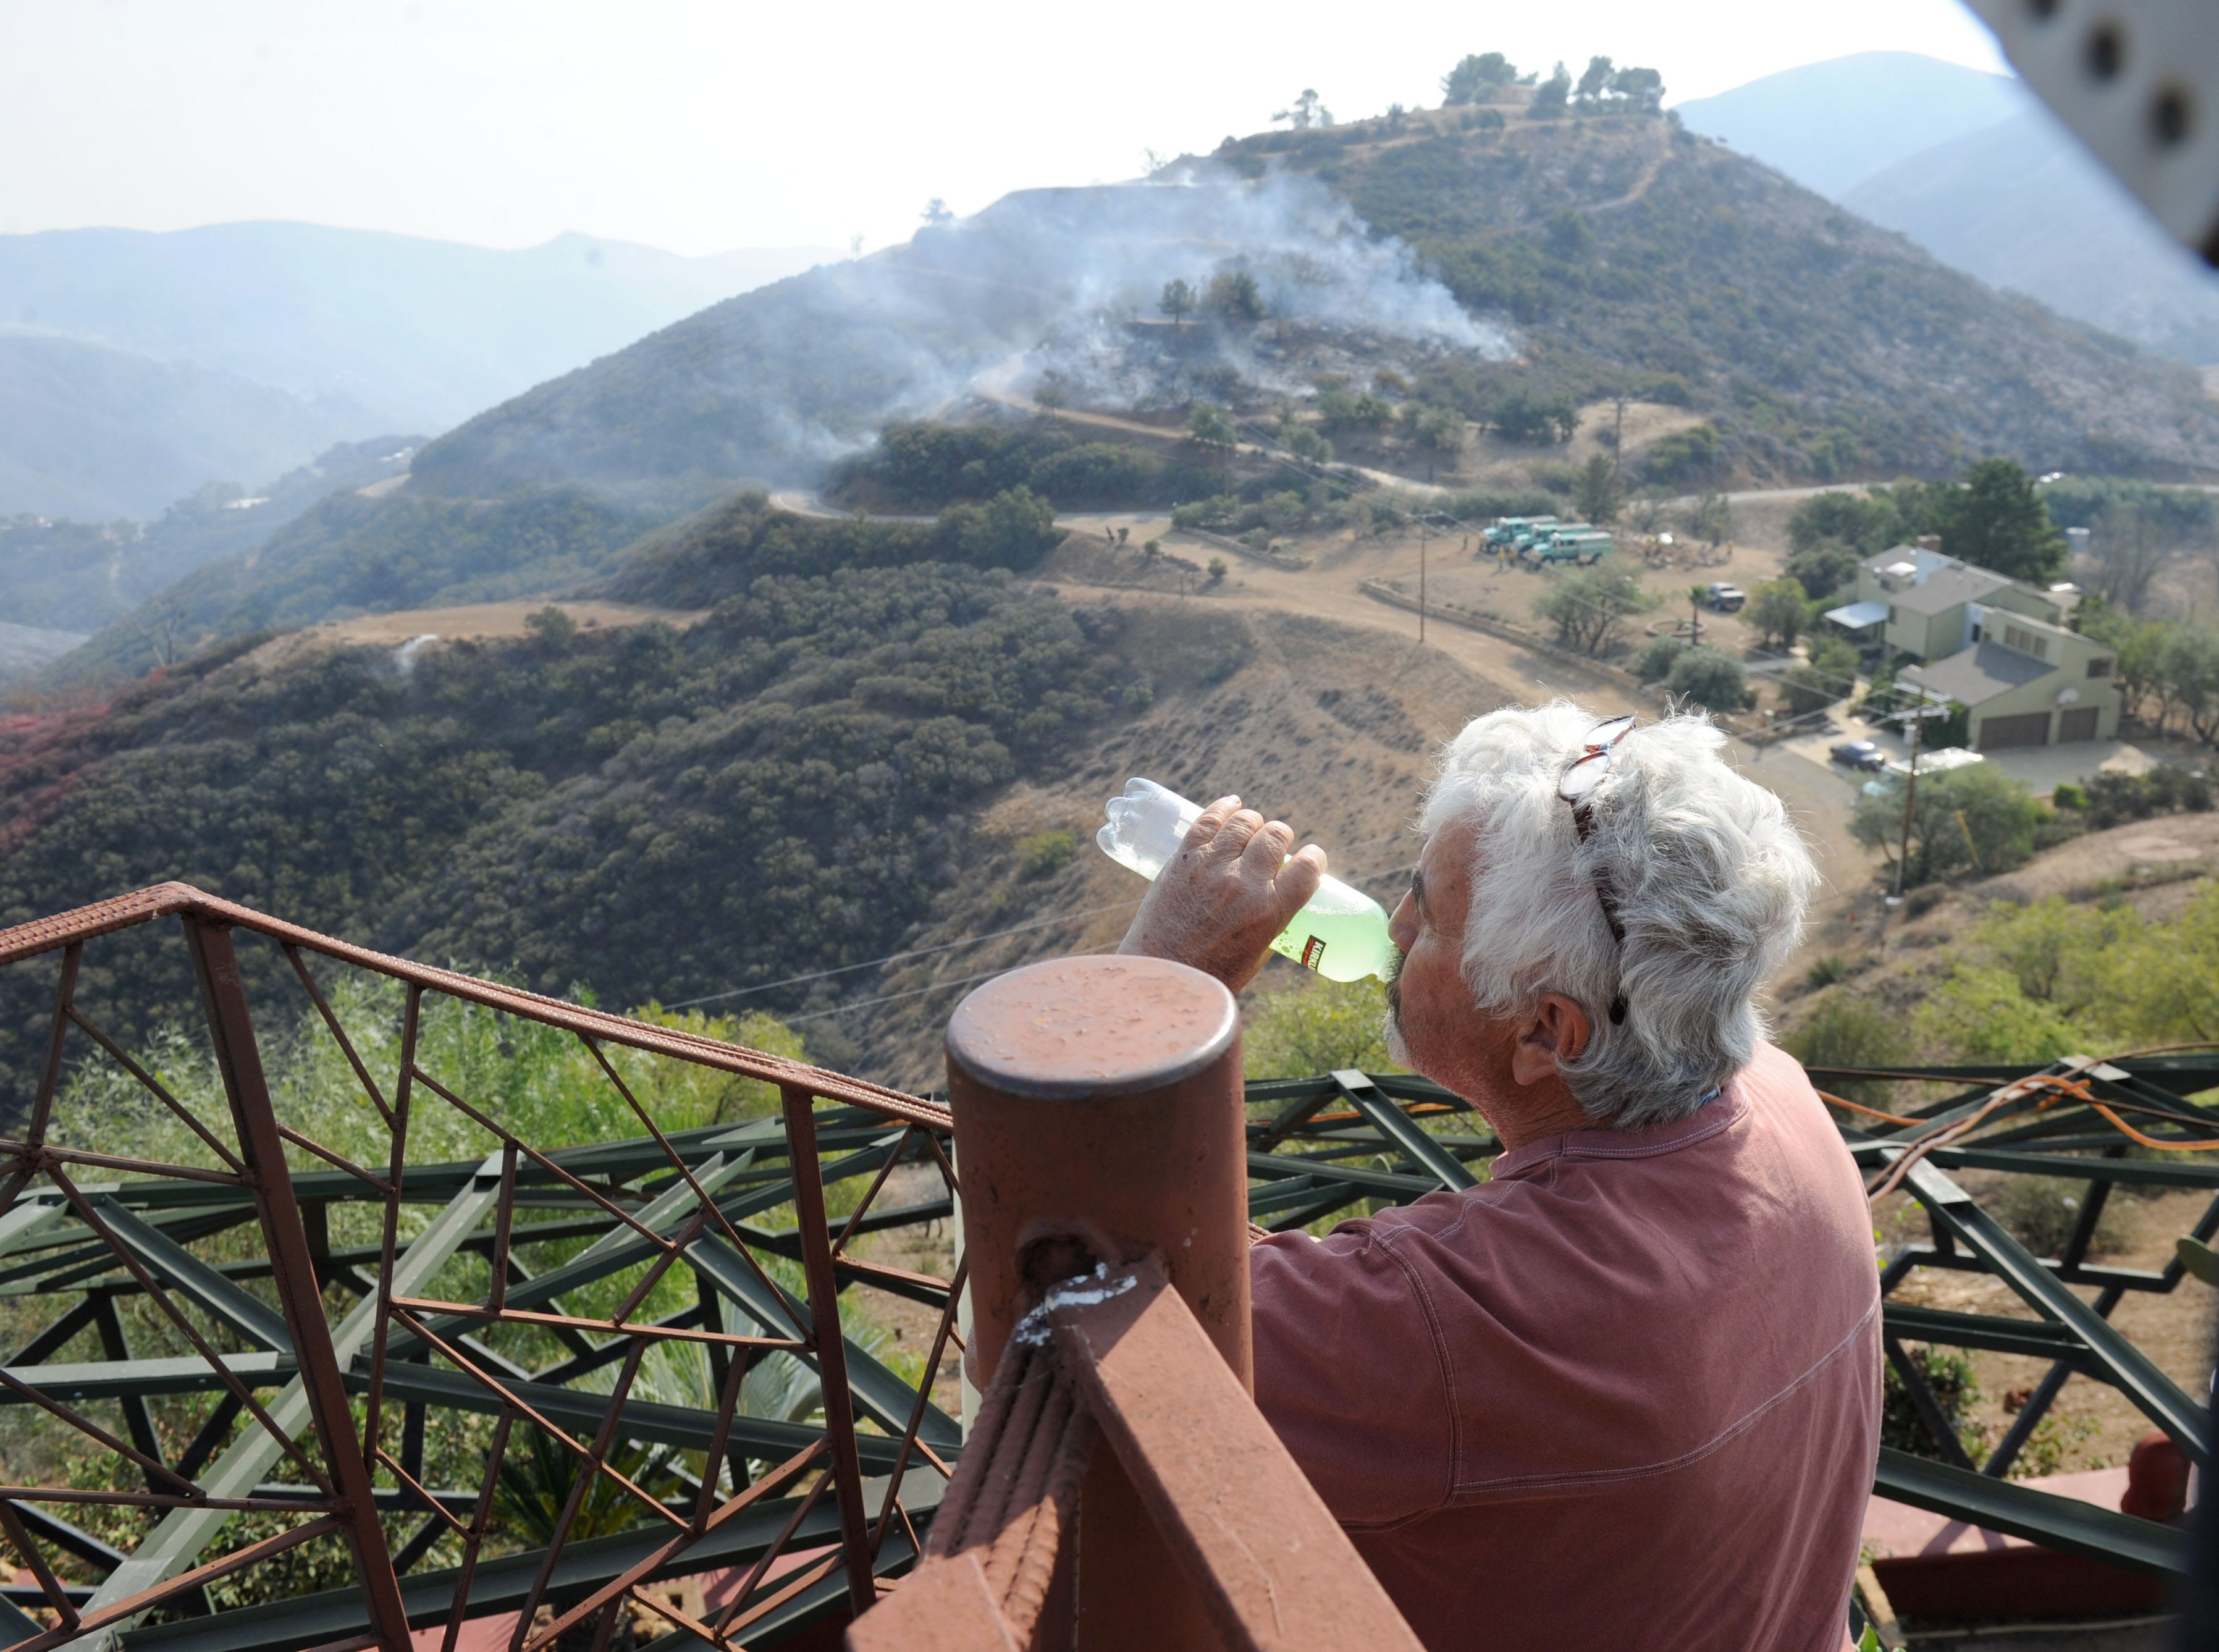 Rick Mecagni looks at the mountains surrounding his house at Mipolomol and Cotharin roads in Ventura County. The Woolsey Fire continued to burn in the area Saturday.